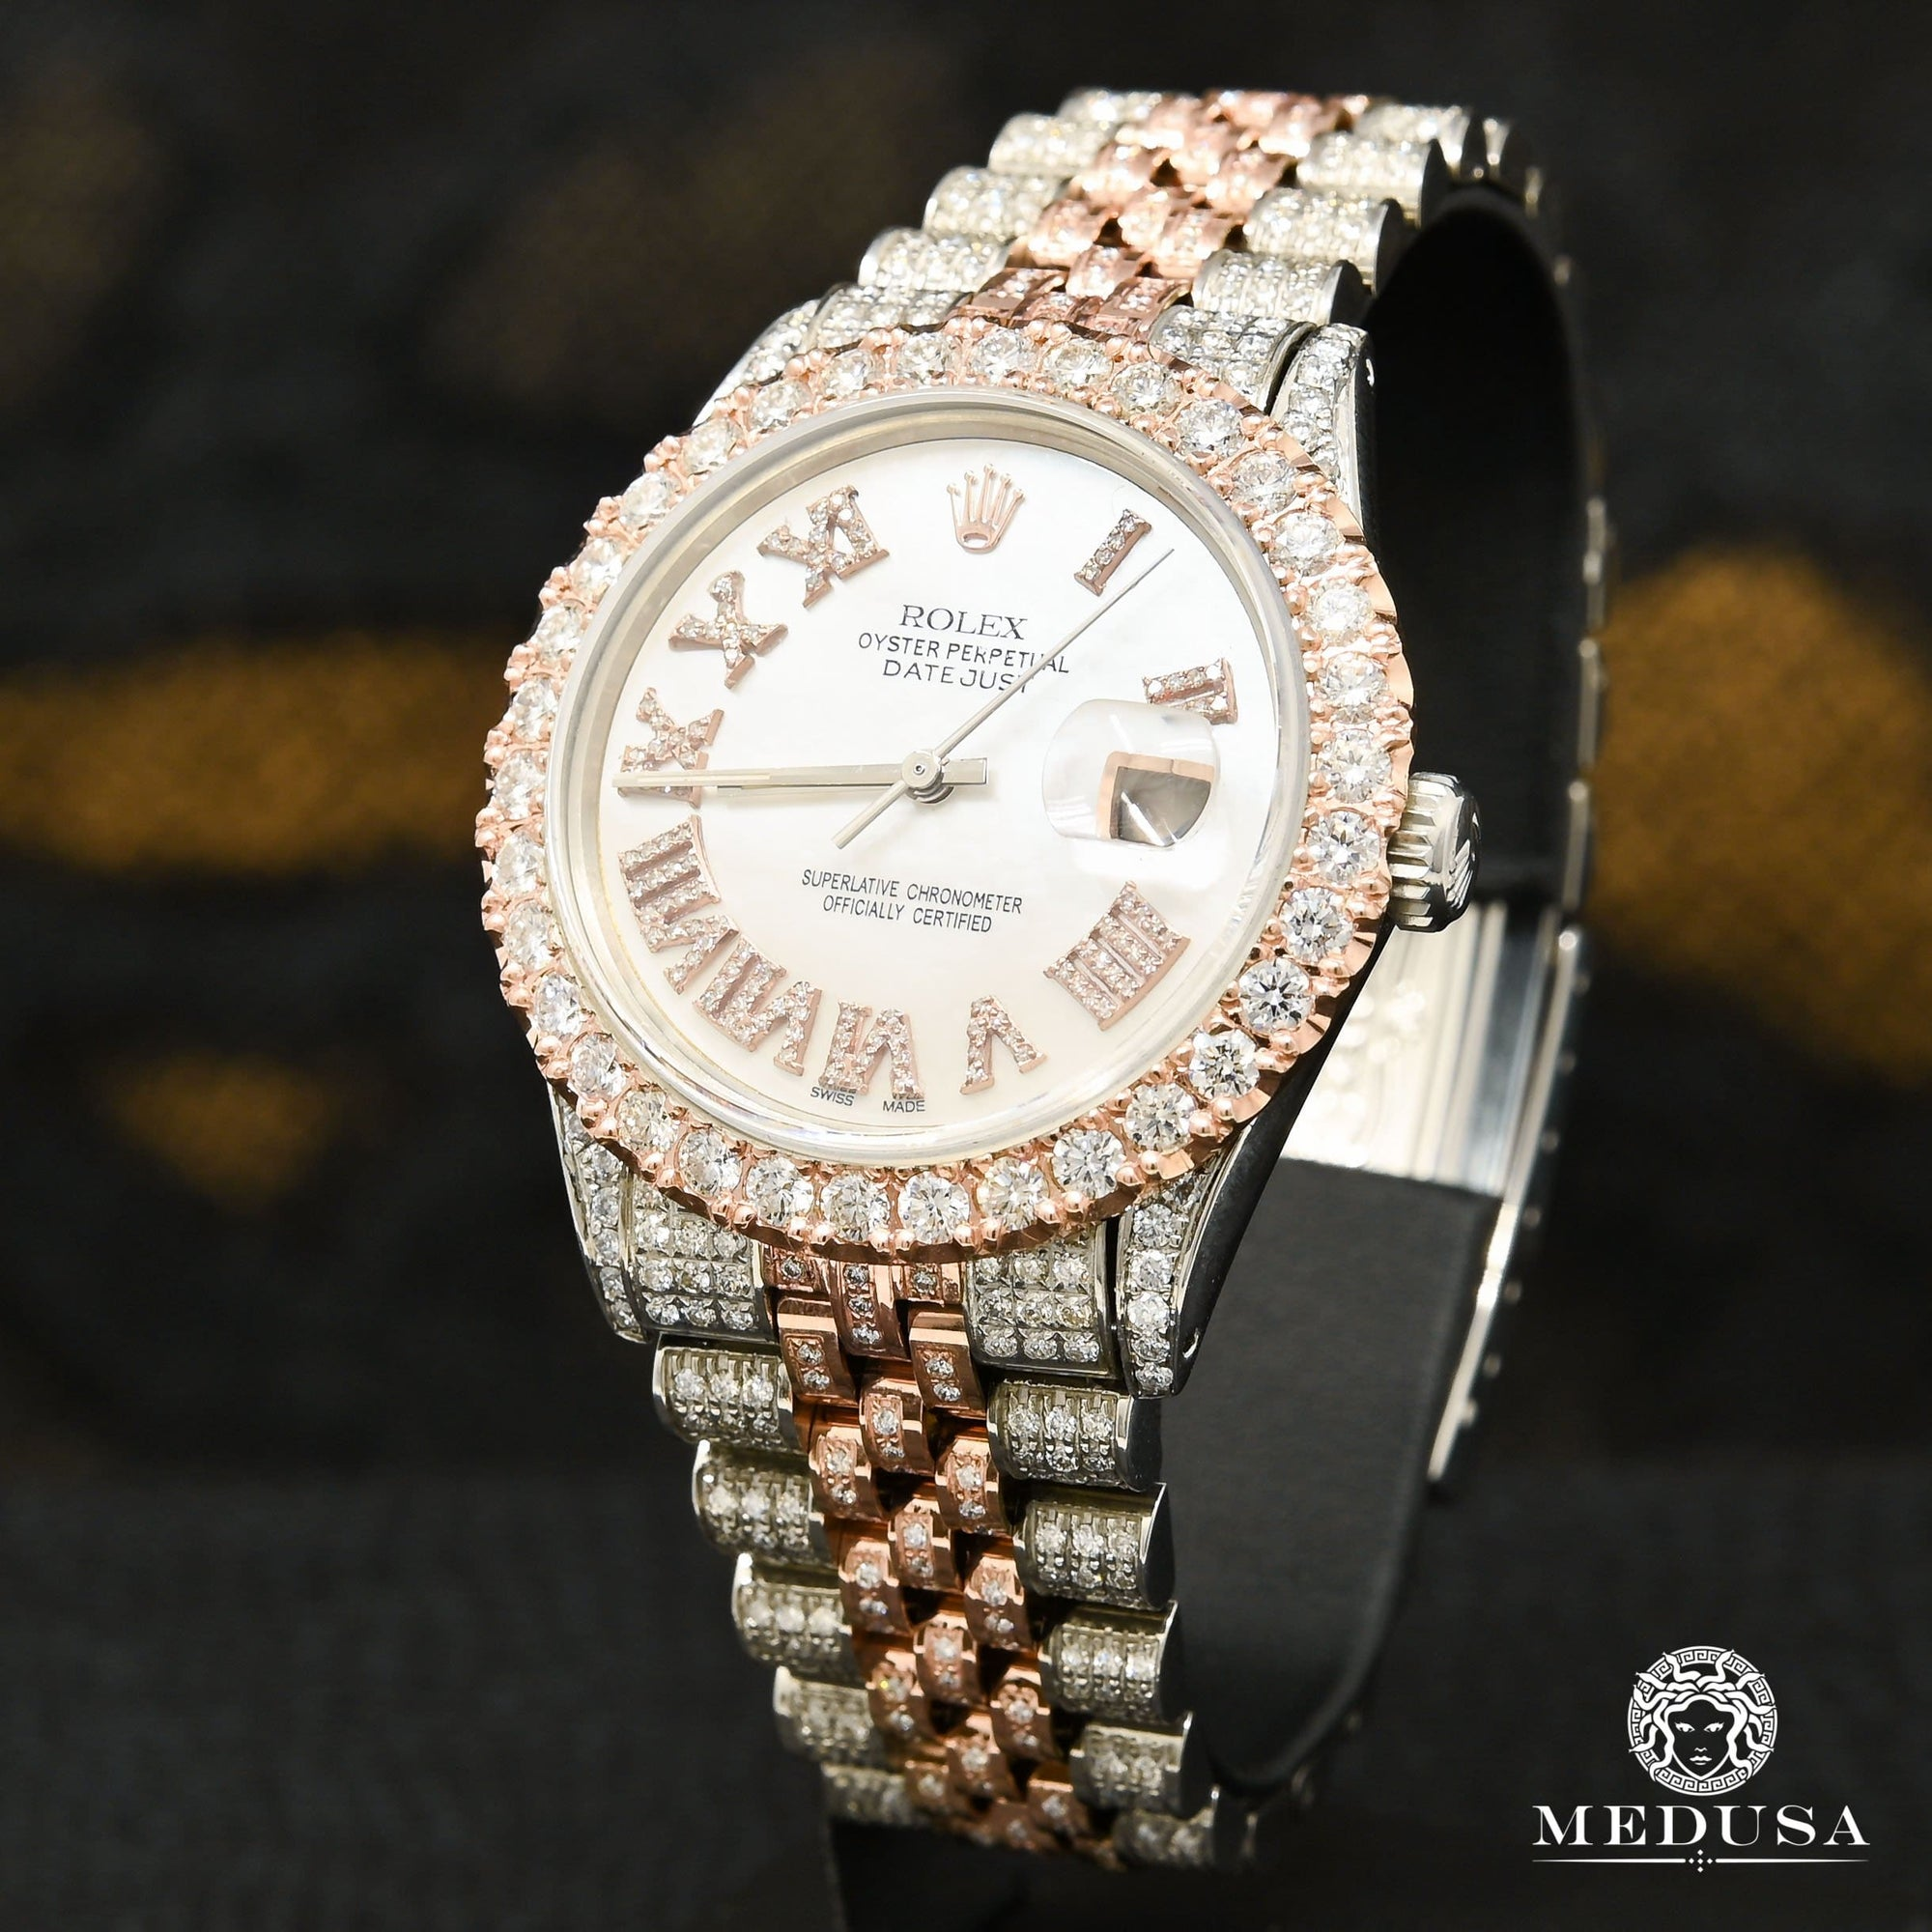 Montre Rolex | Montre Homme Datejust 36mm - Rose 2 Tons Iced Out Or Rose 2 Tons